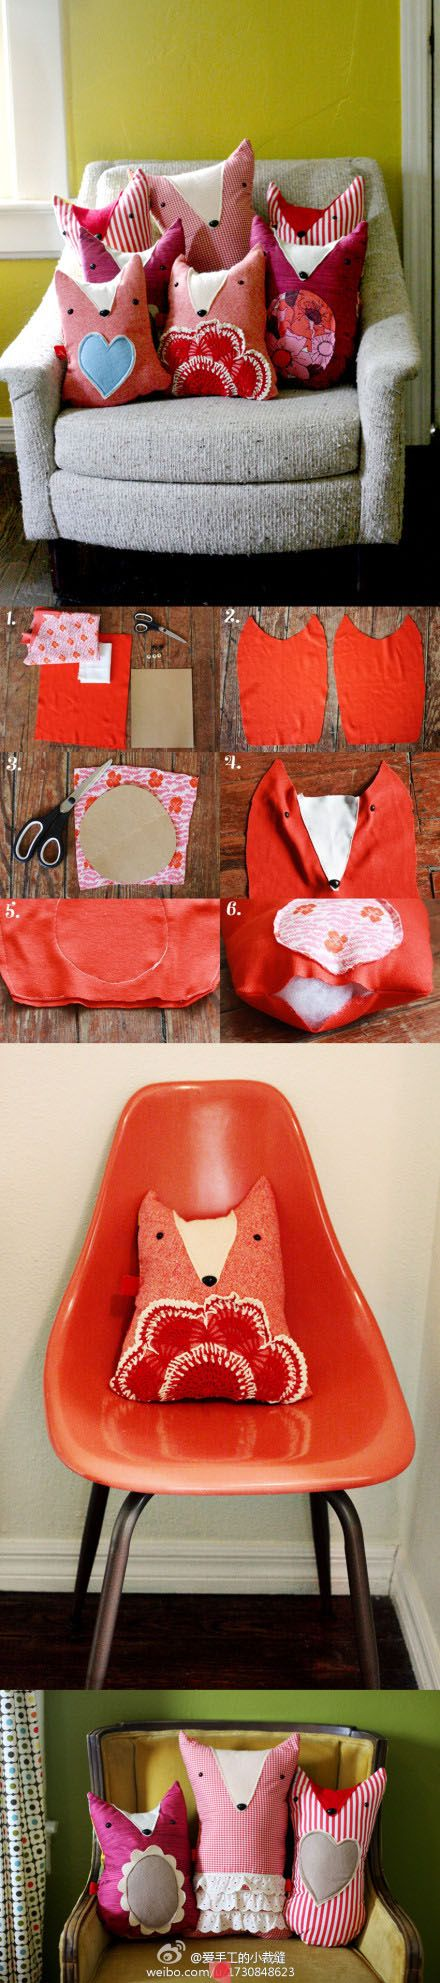 Super cute #fox pillow sewing project, using different materials for #applique, and utilizing simple stitches so any level of experience can complete it!